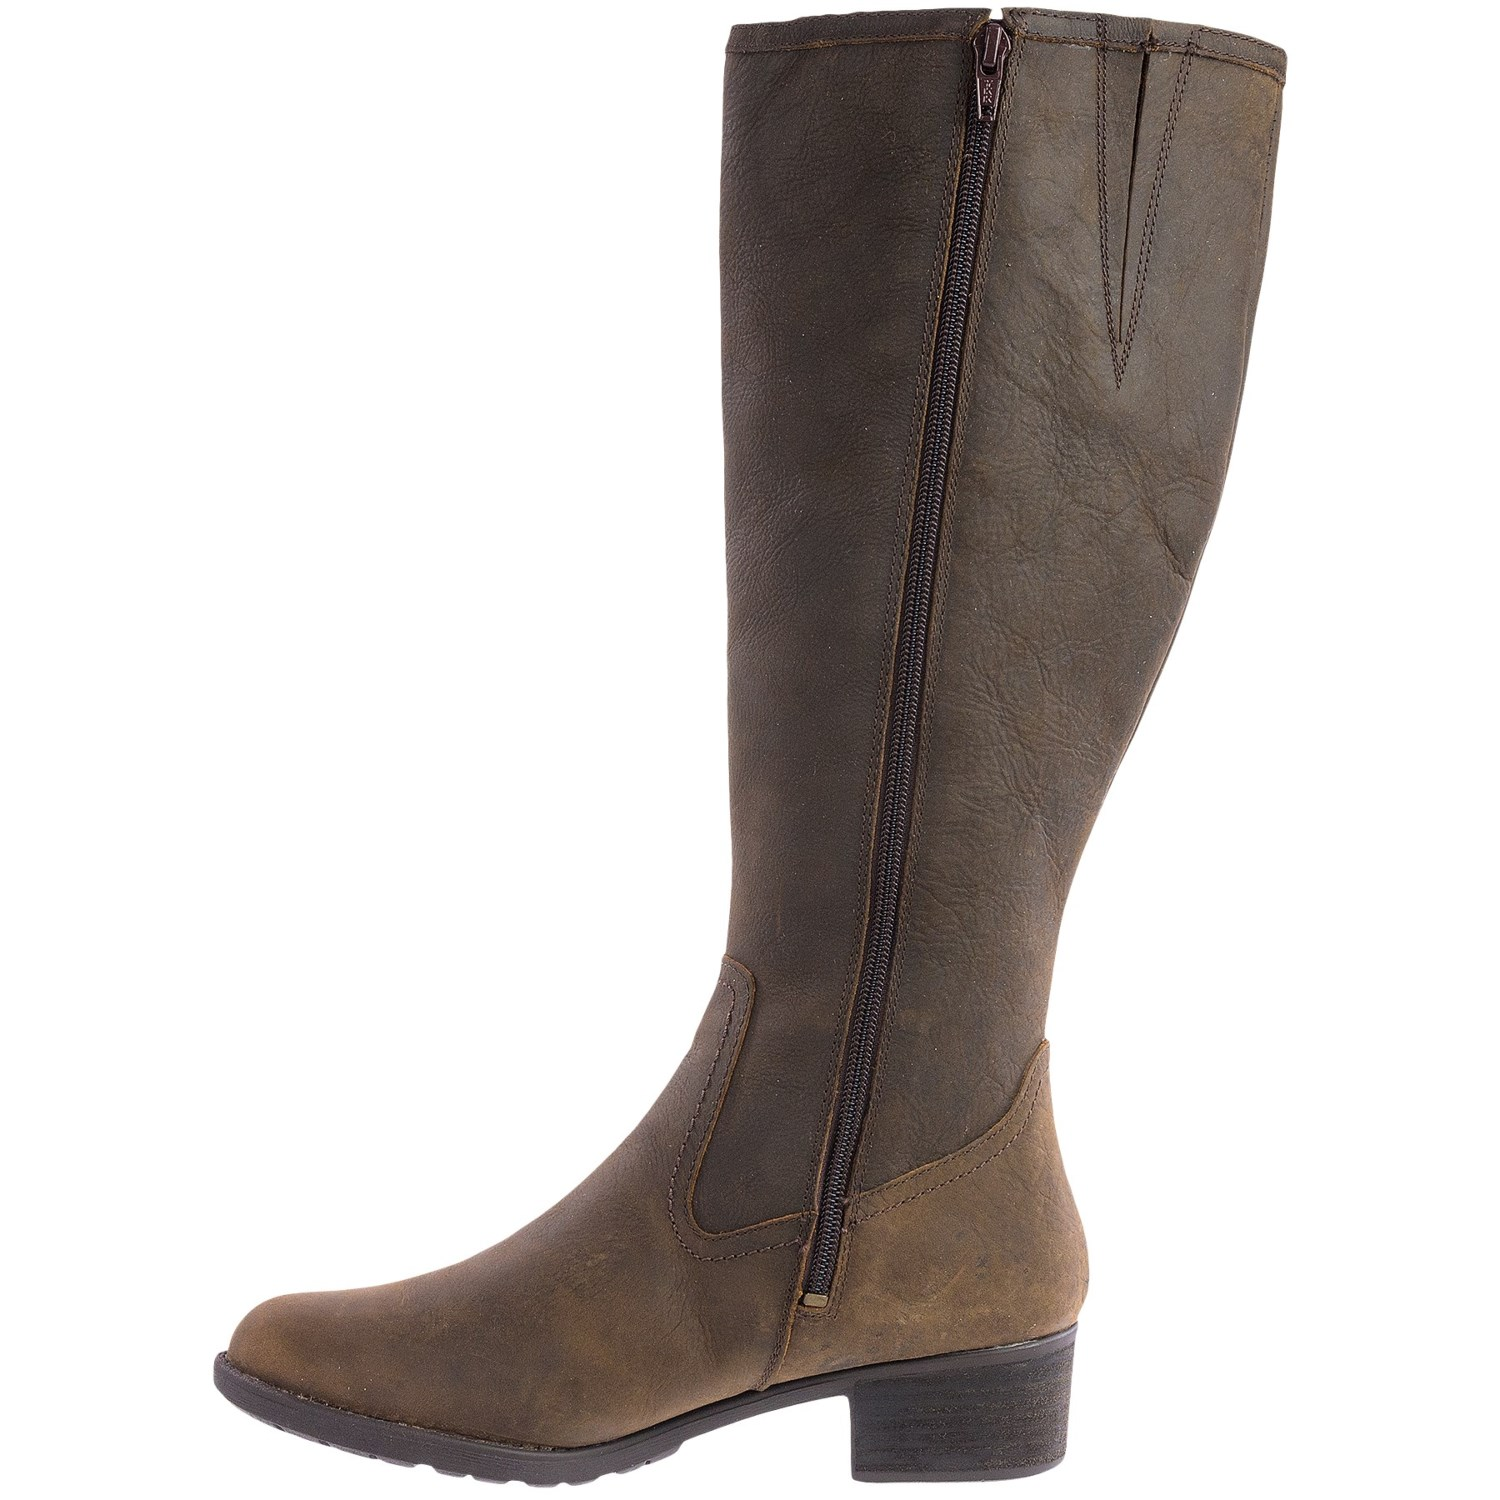 Excellent 9634T_5 Hush Puppies Noliva Maria Ankle Boots  Leather For Women